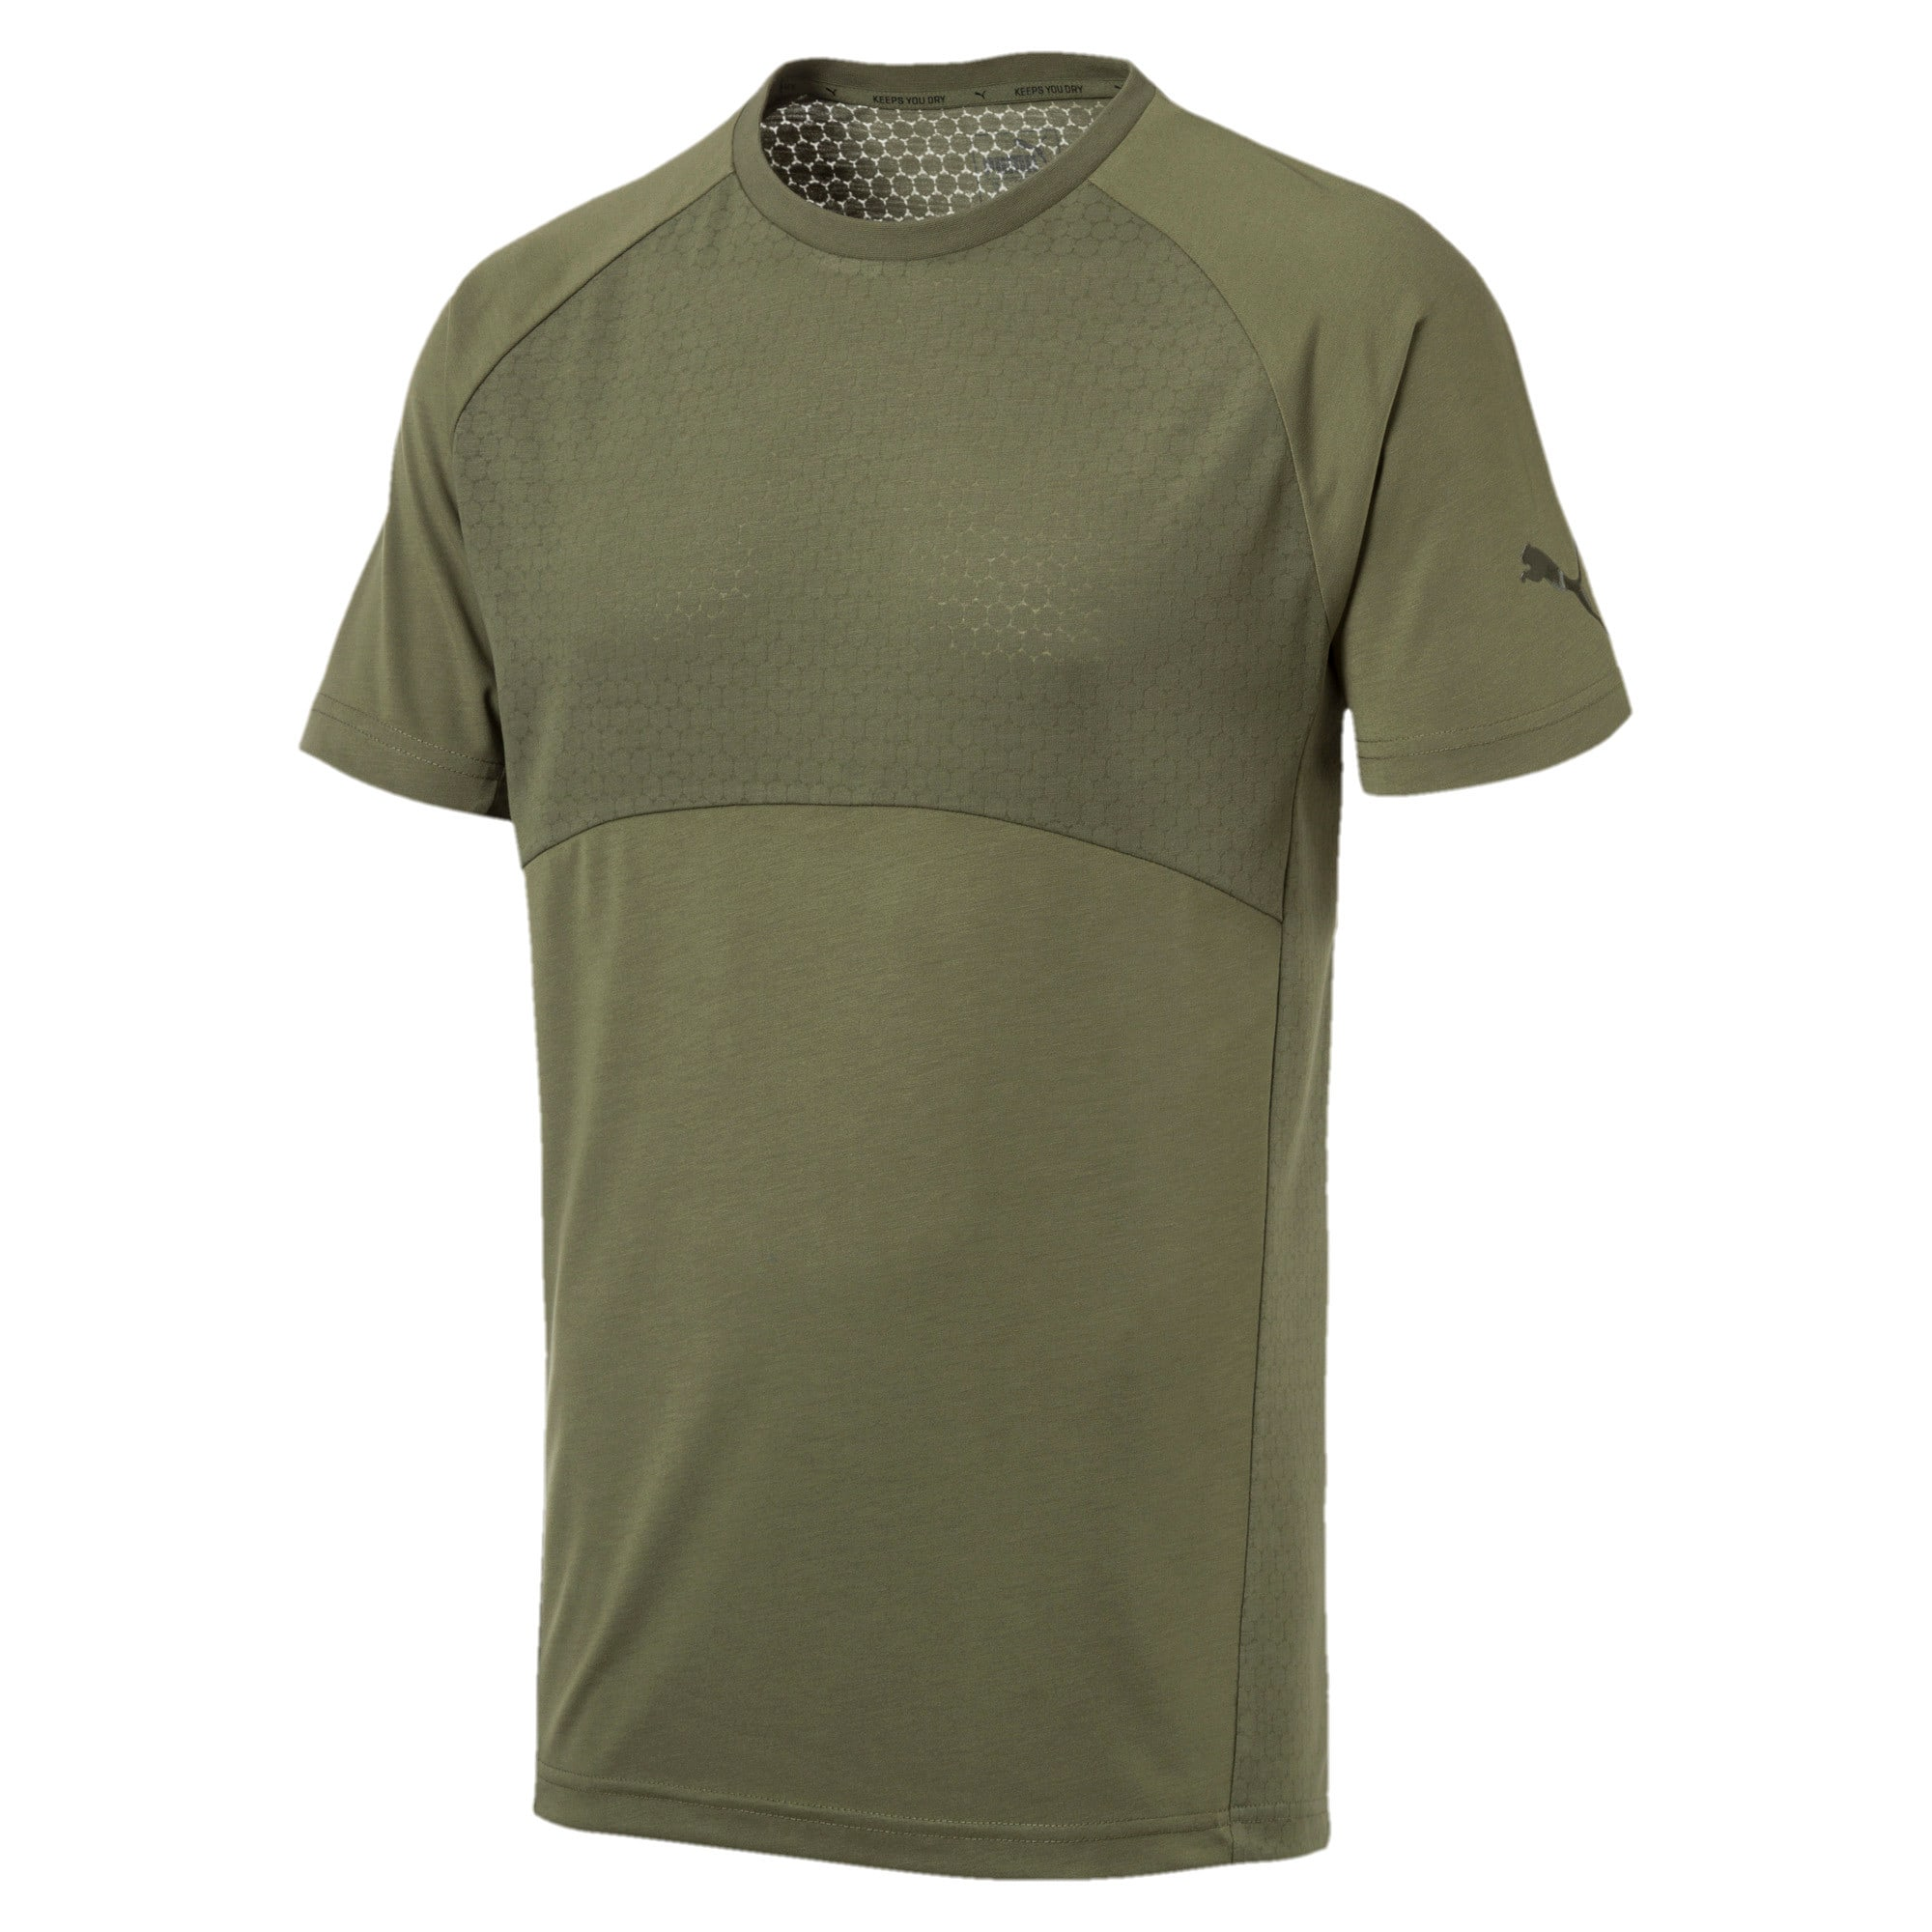 Thumbnail 1 of Evostripe Lite Men's Tee, Olivine, medium